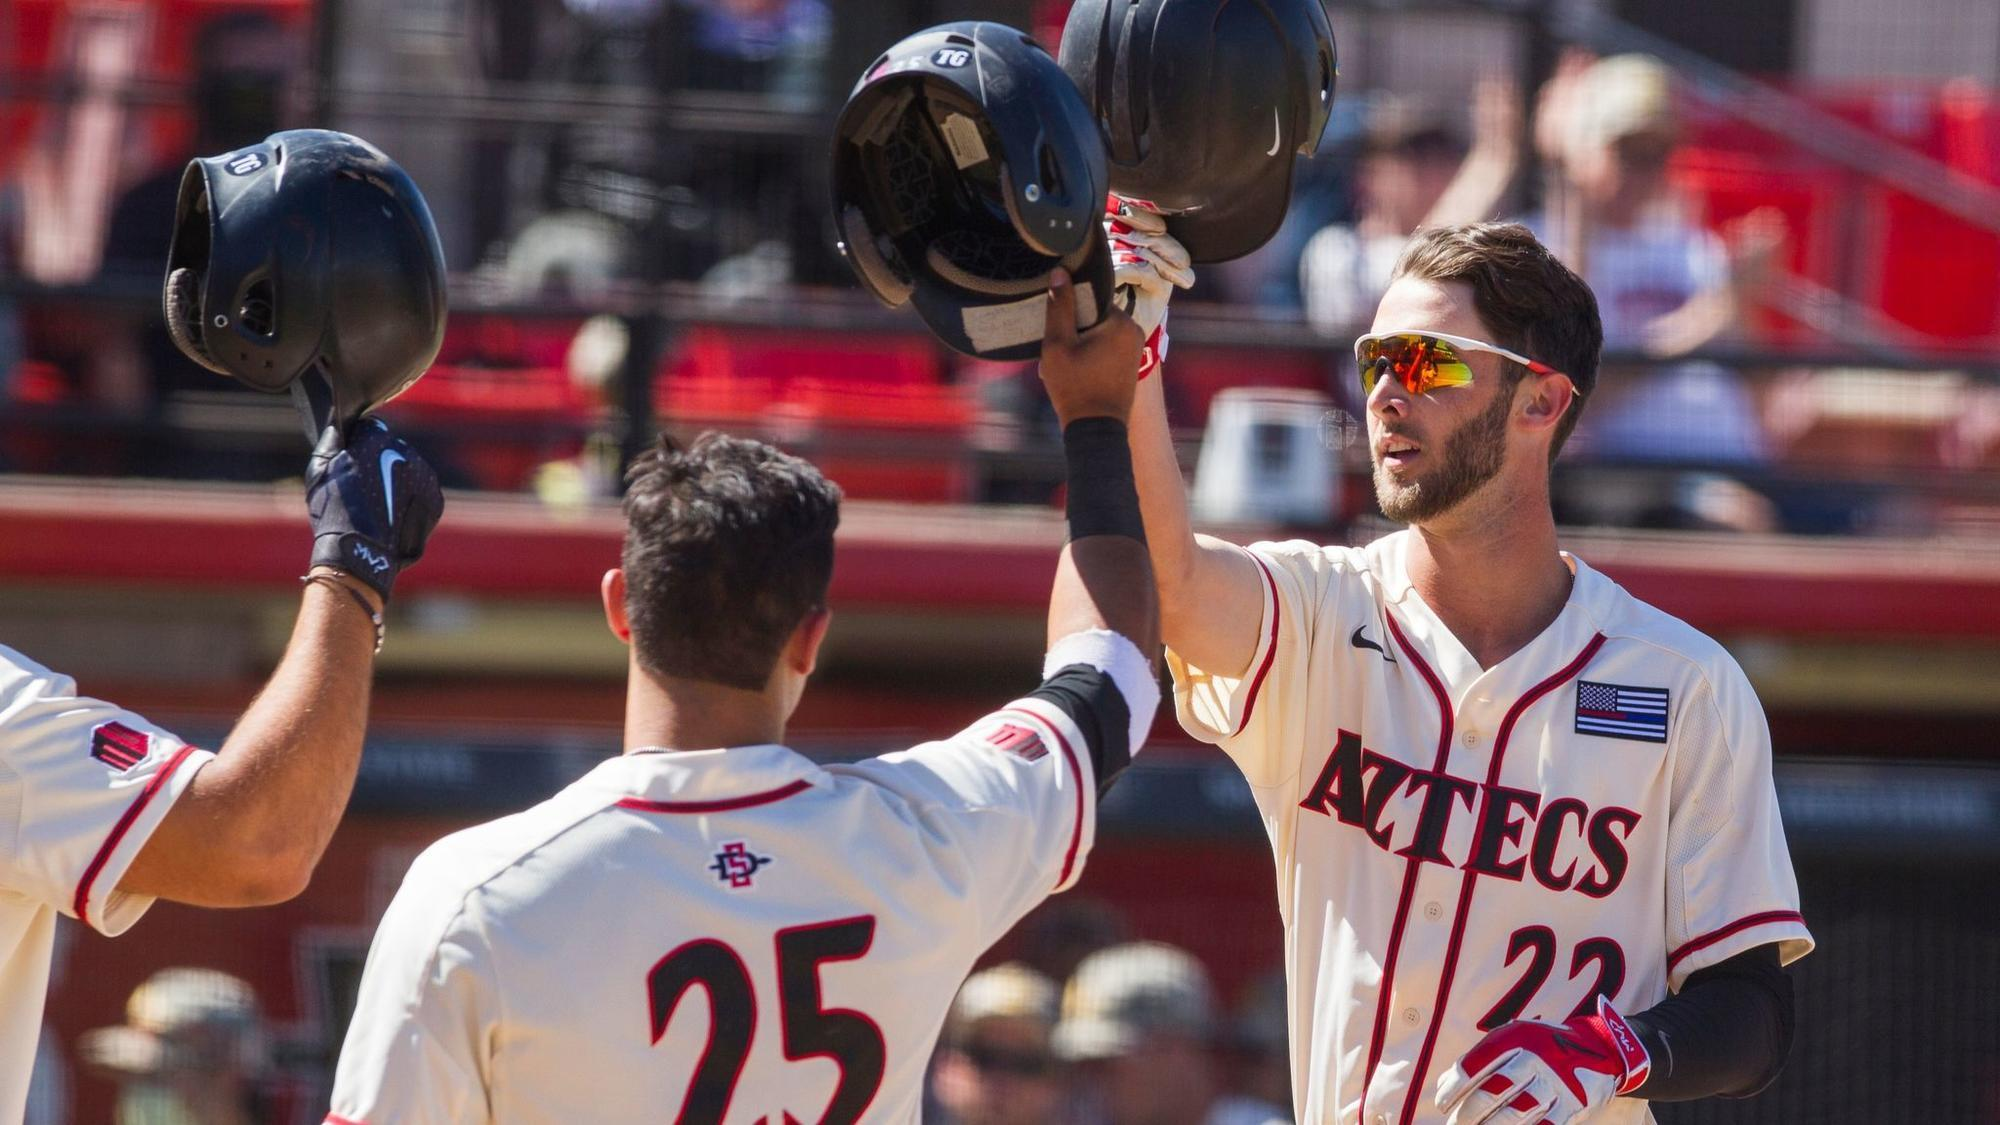 Sd-sp-azbase-sdsu-points-aims-for-ncaa-regionals-0516